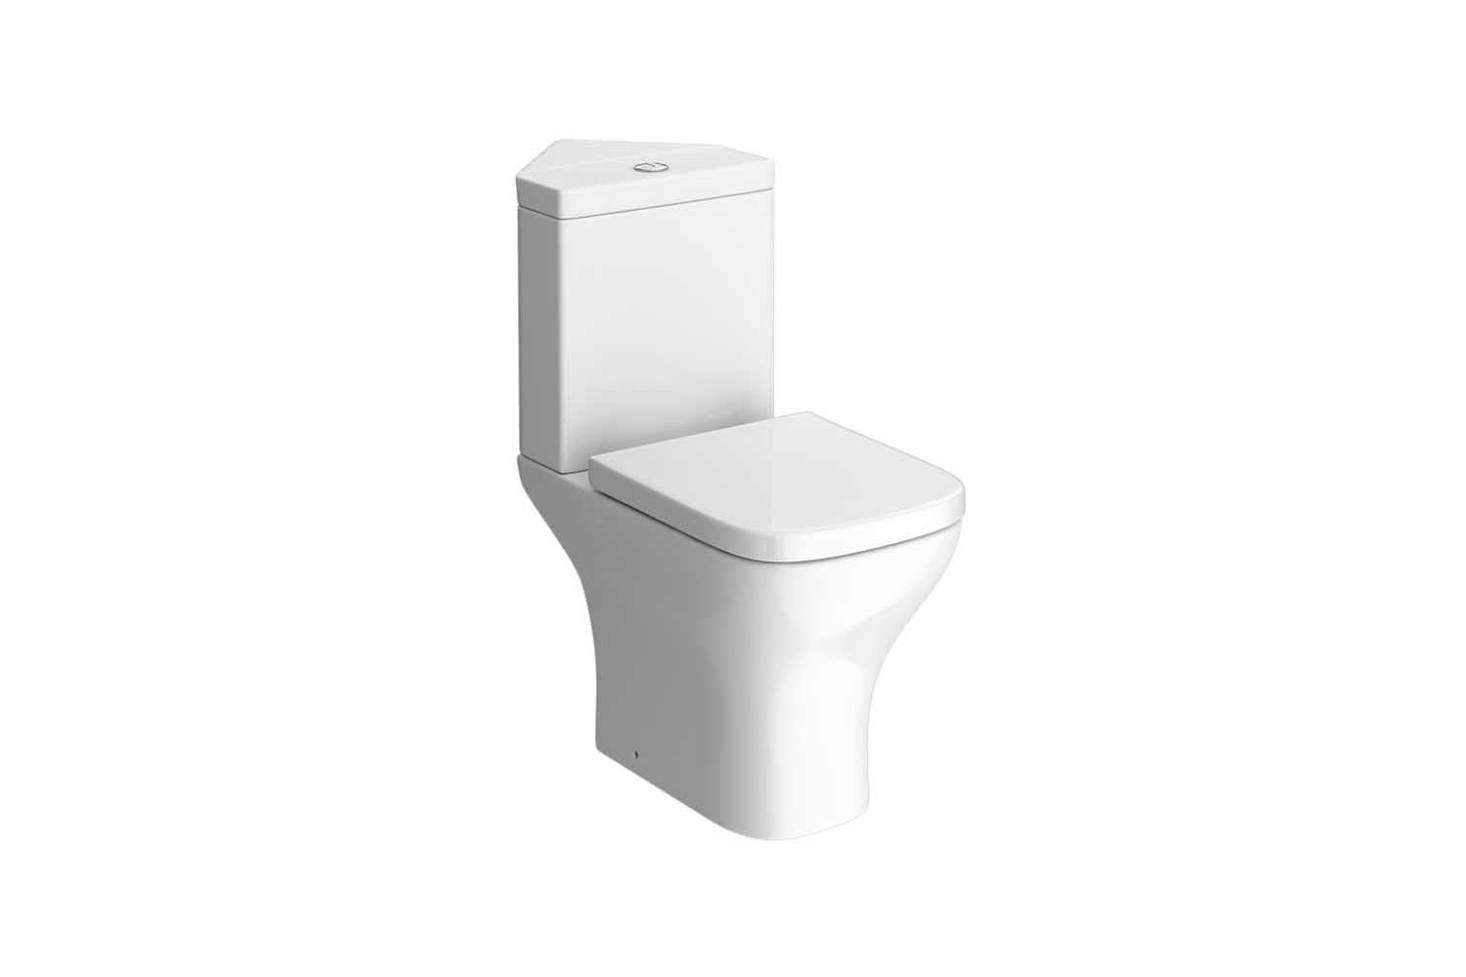 Outstanding 10 Easy Pieces Corner Toilets For Compact Bathrooms Beatyapartments Chair Design Images Beatyapartmentscom